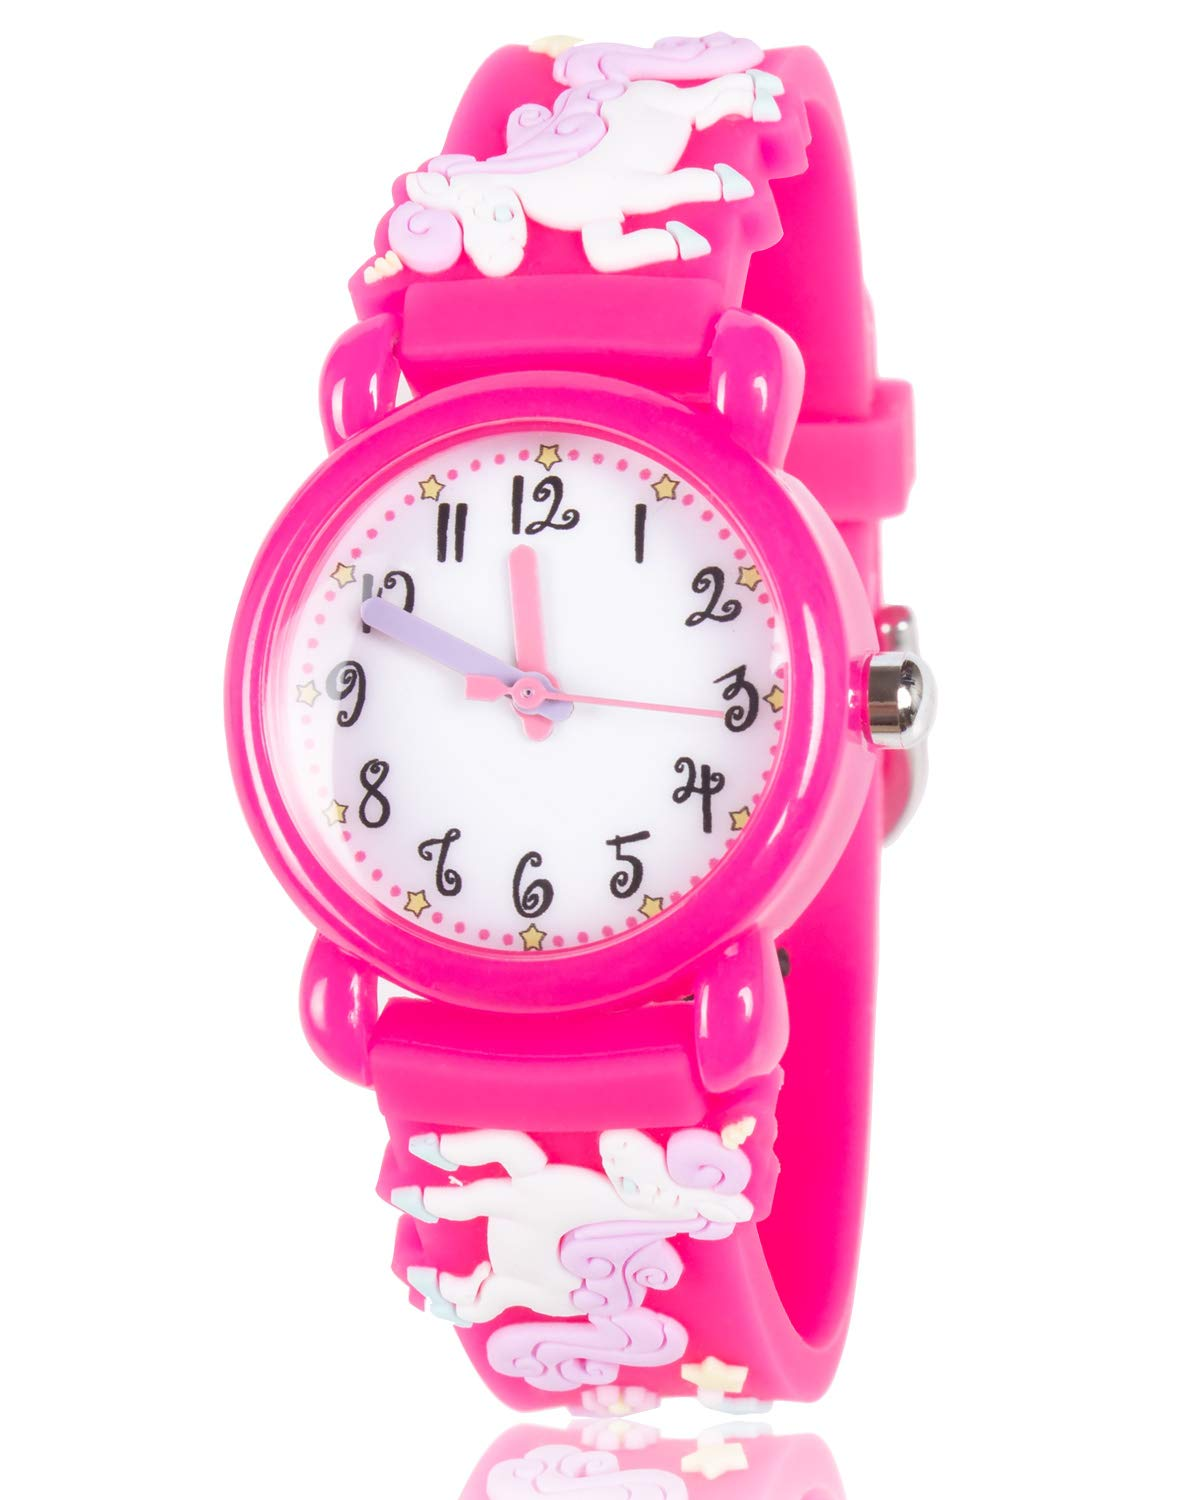 Unicorn Gifts for 4-13 Year Old Girls Kids, Watch Toys for Girl Boy Age 5-12 Birthday Present for Kids by Kids Gift